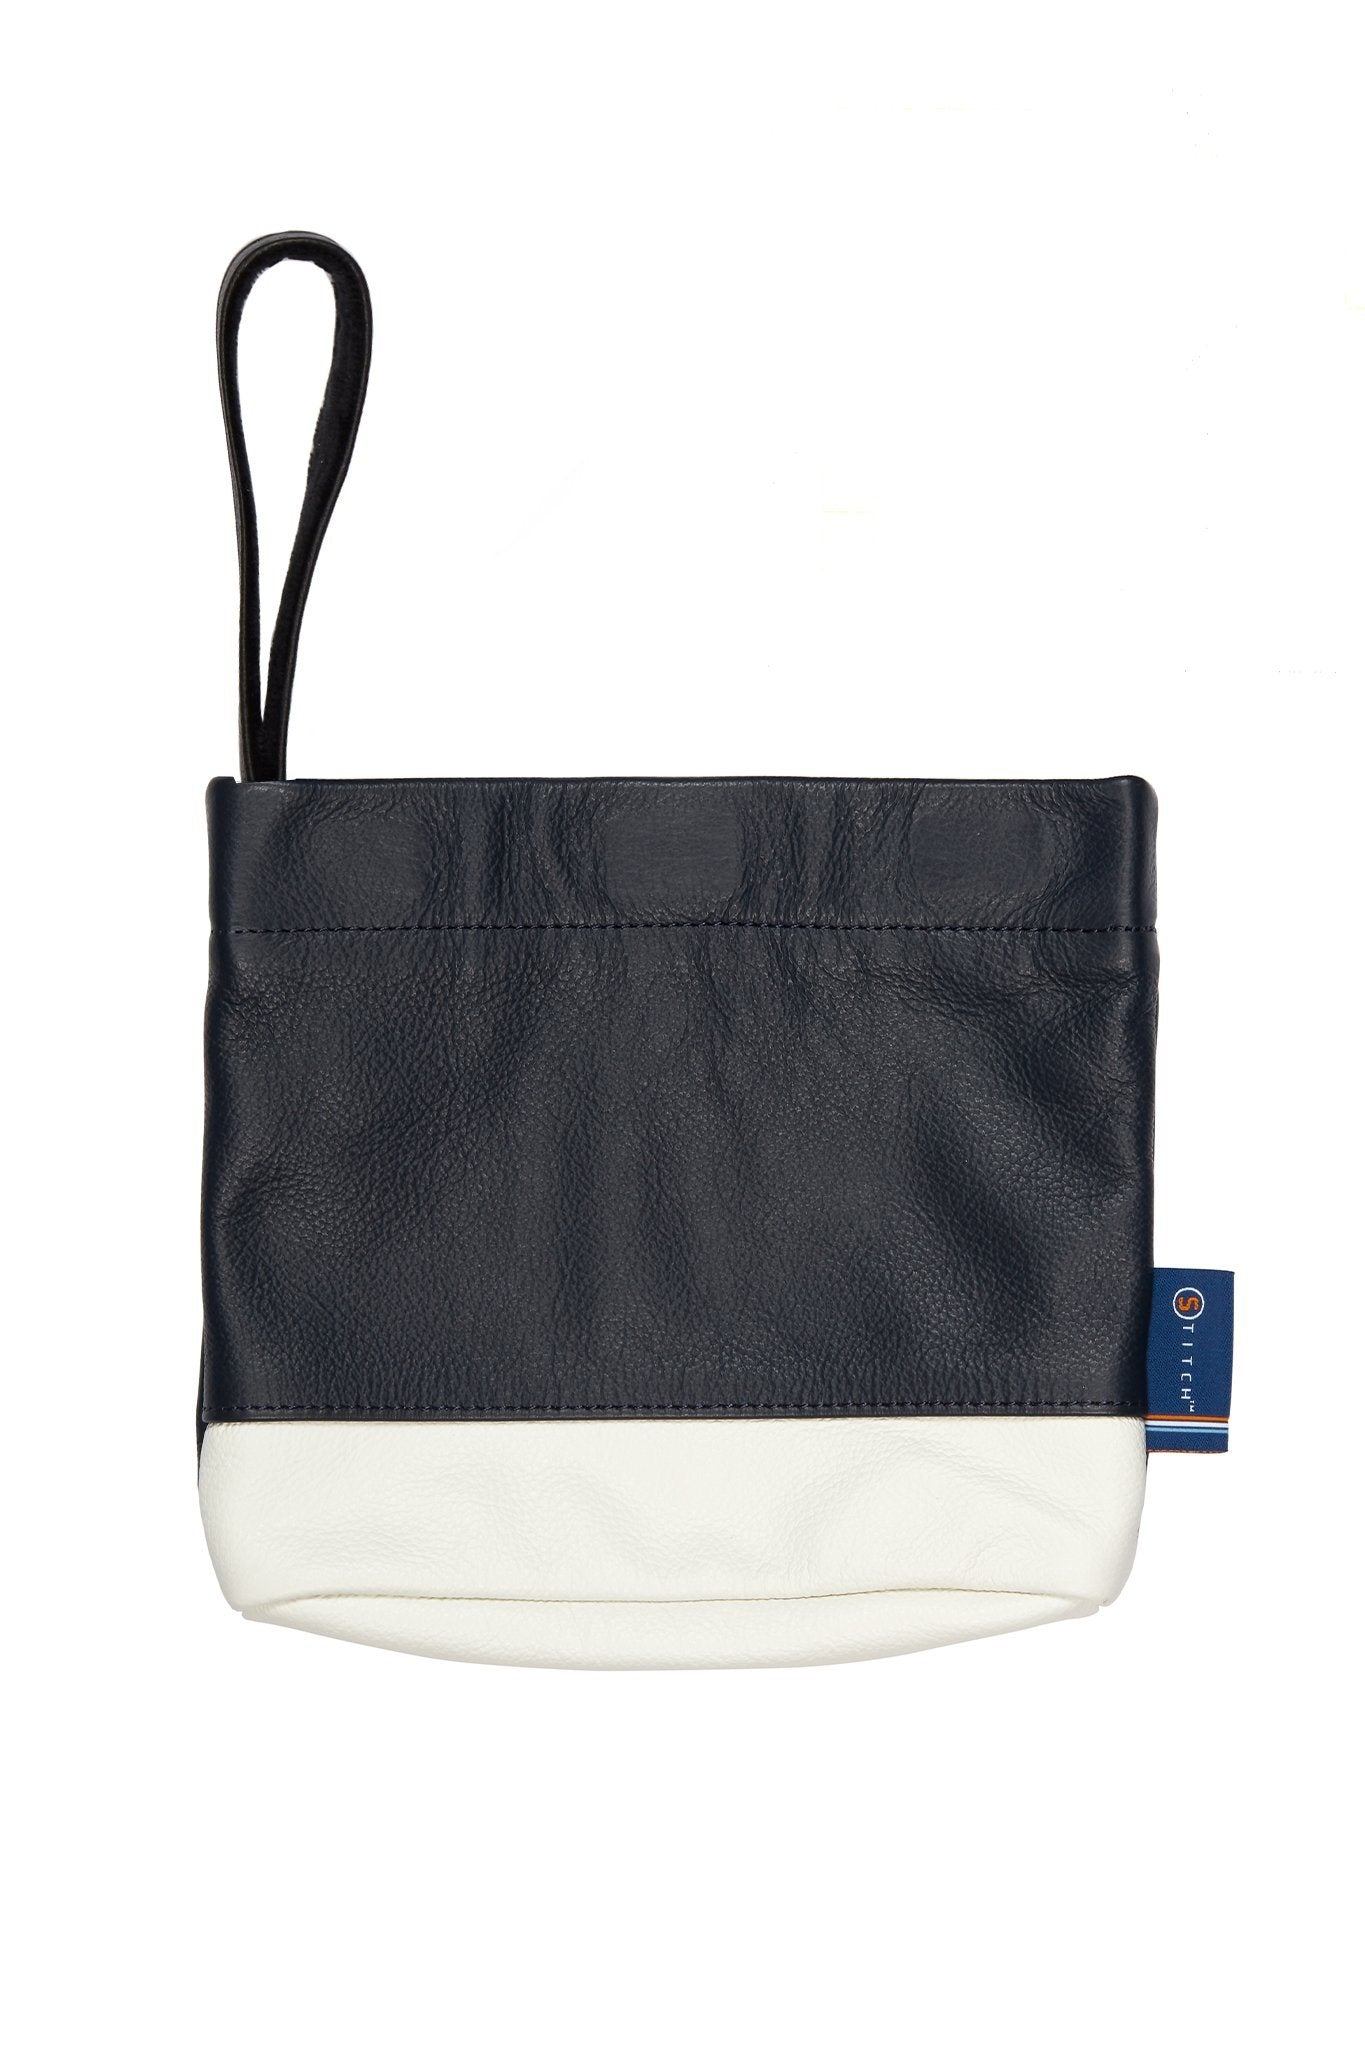 Roadster Leather Valuables Pouch